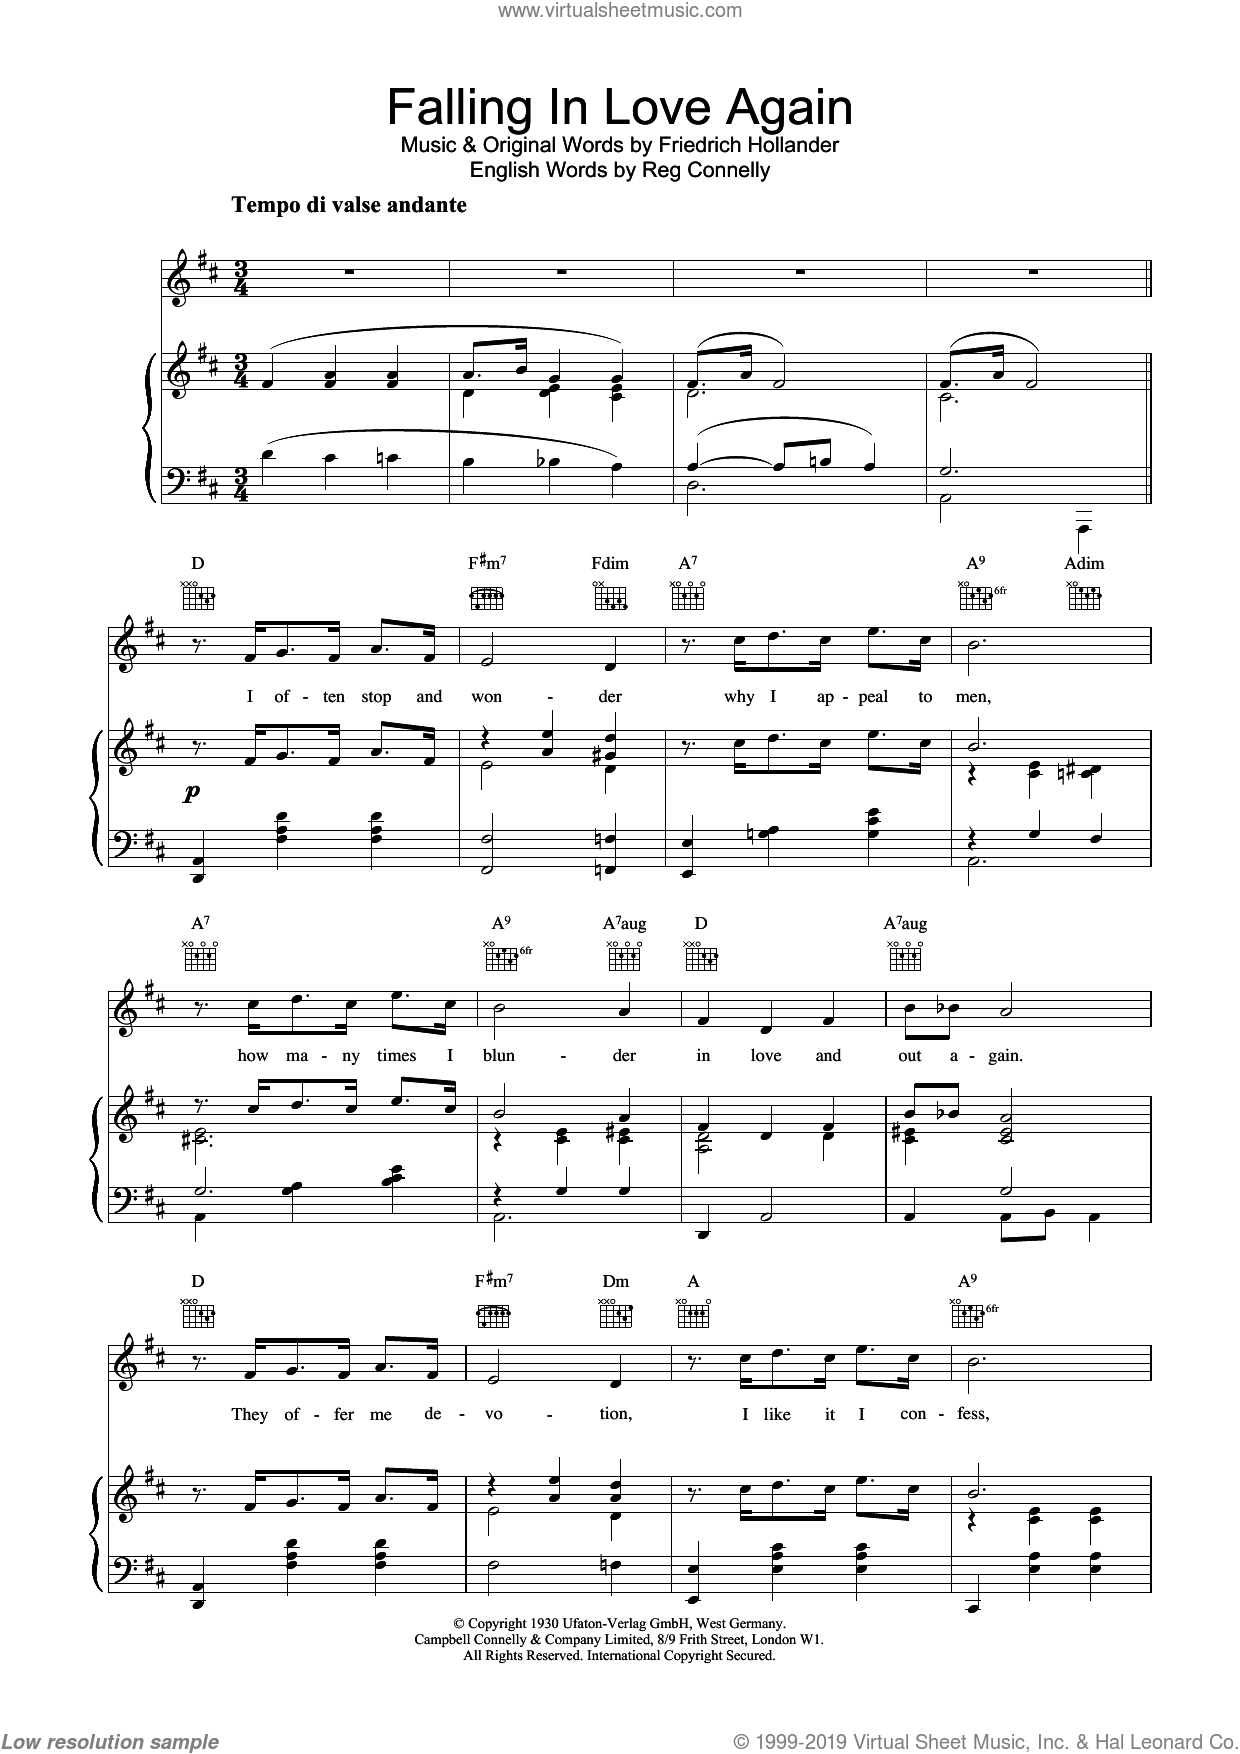 Falling In Love Again sheet music for voice, piano or guitar by Marlene Dietrich